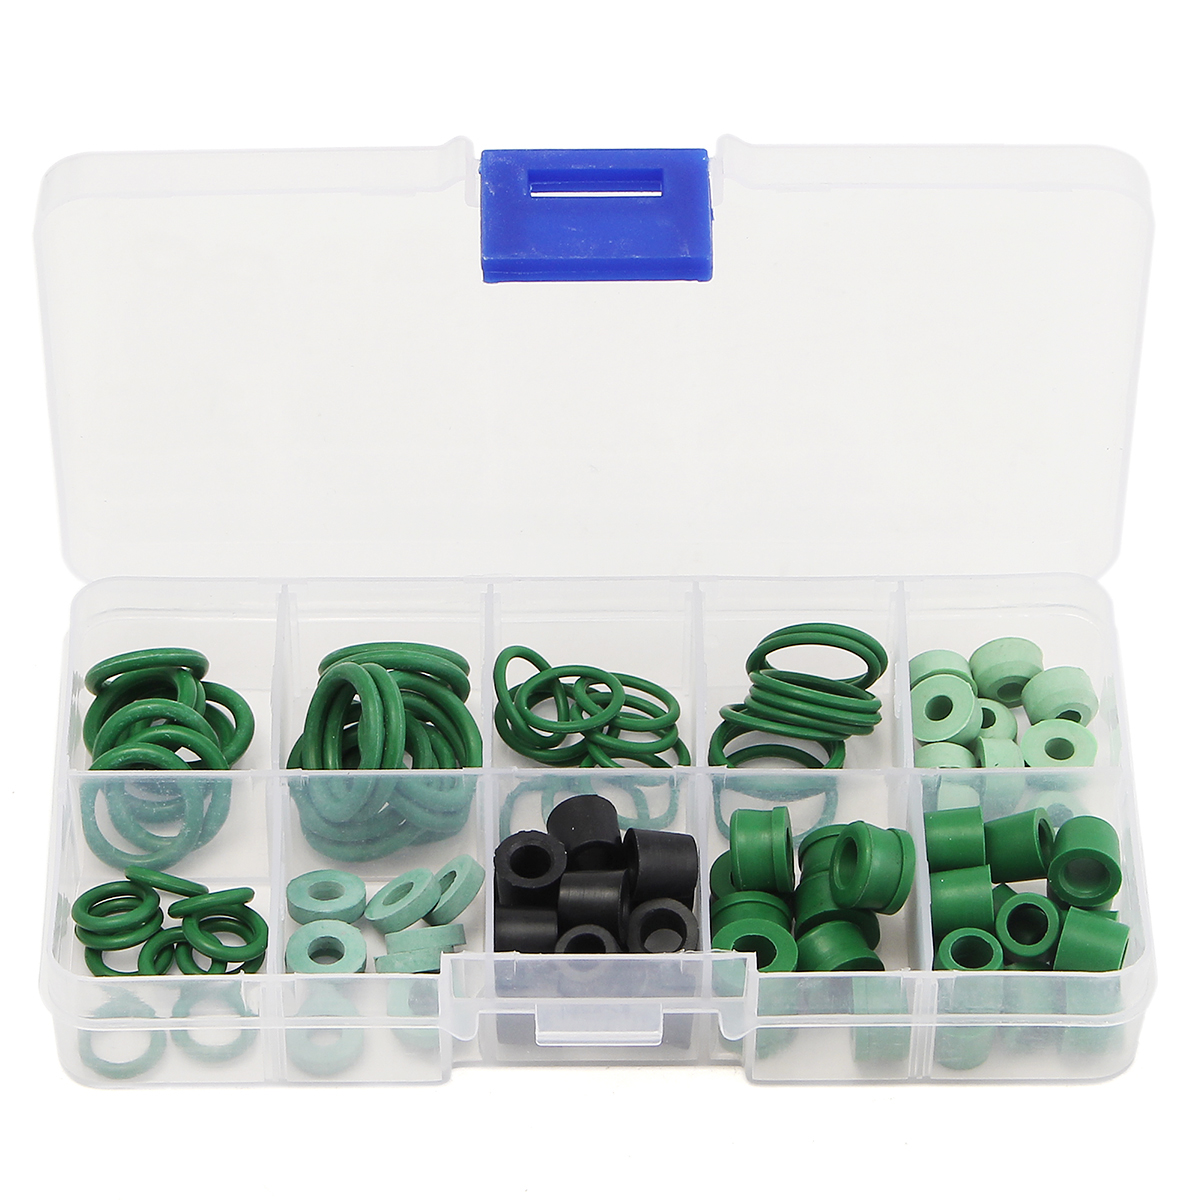 110pcs Refrigeration Hose Gasket's O-Ring Repair Kit 8 Different Sizes SWEET KIT Soft Rubber R134a/R410A O Ring Set(China)